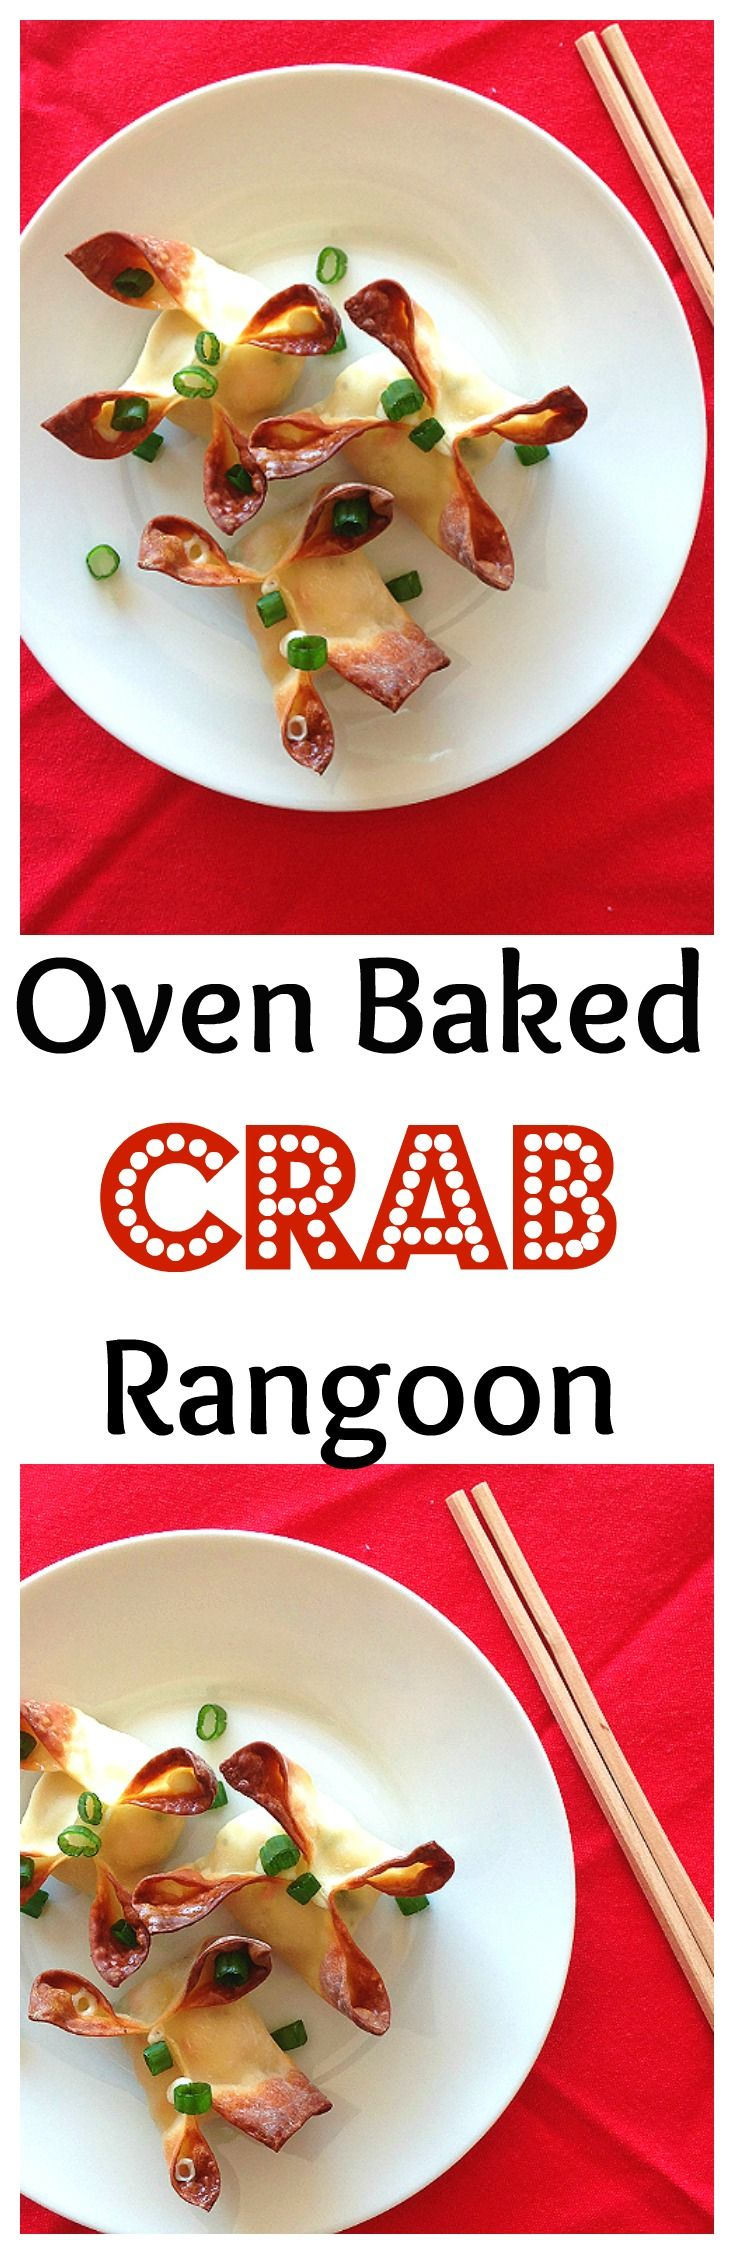 633 creamy crab rangoon 9